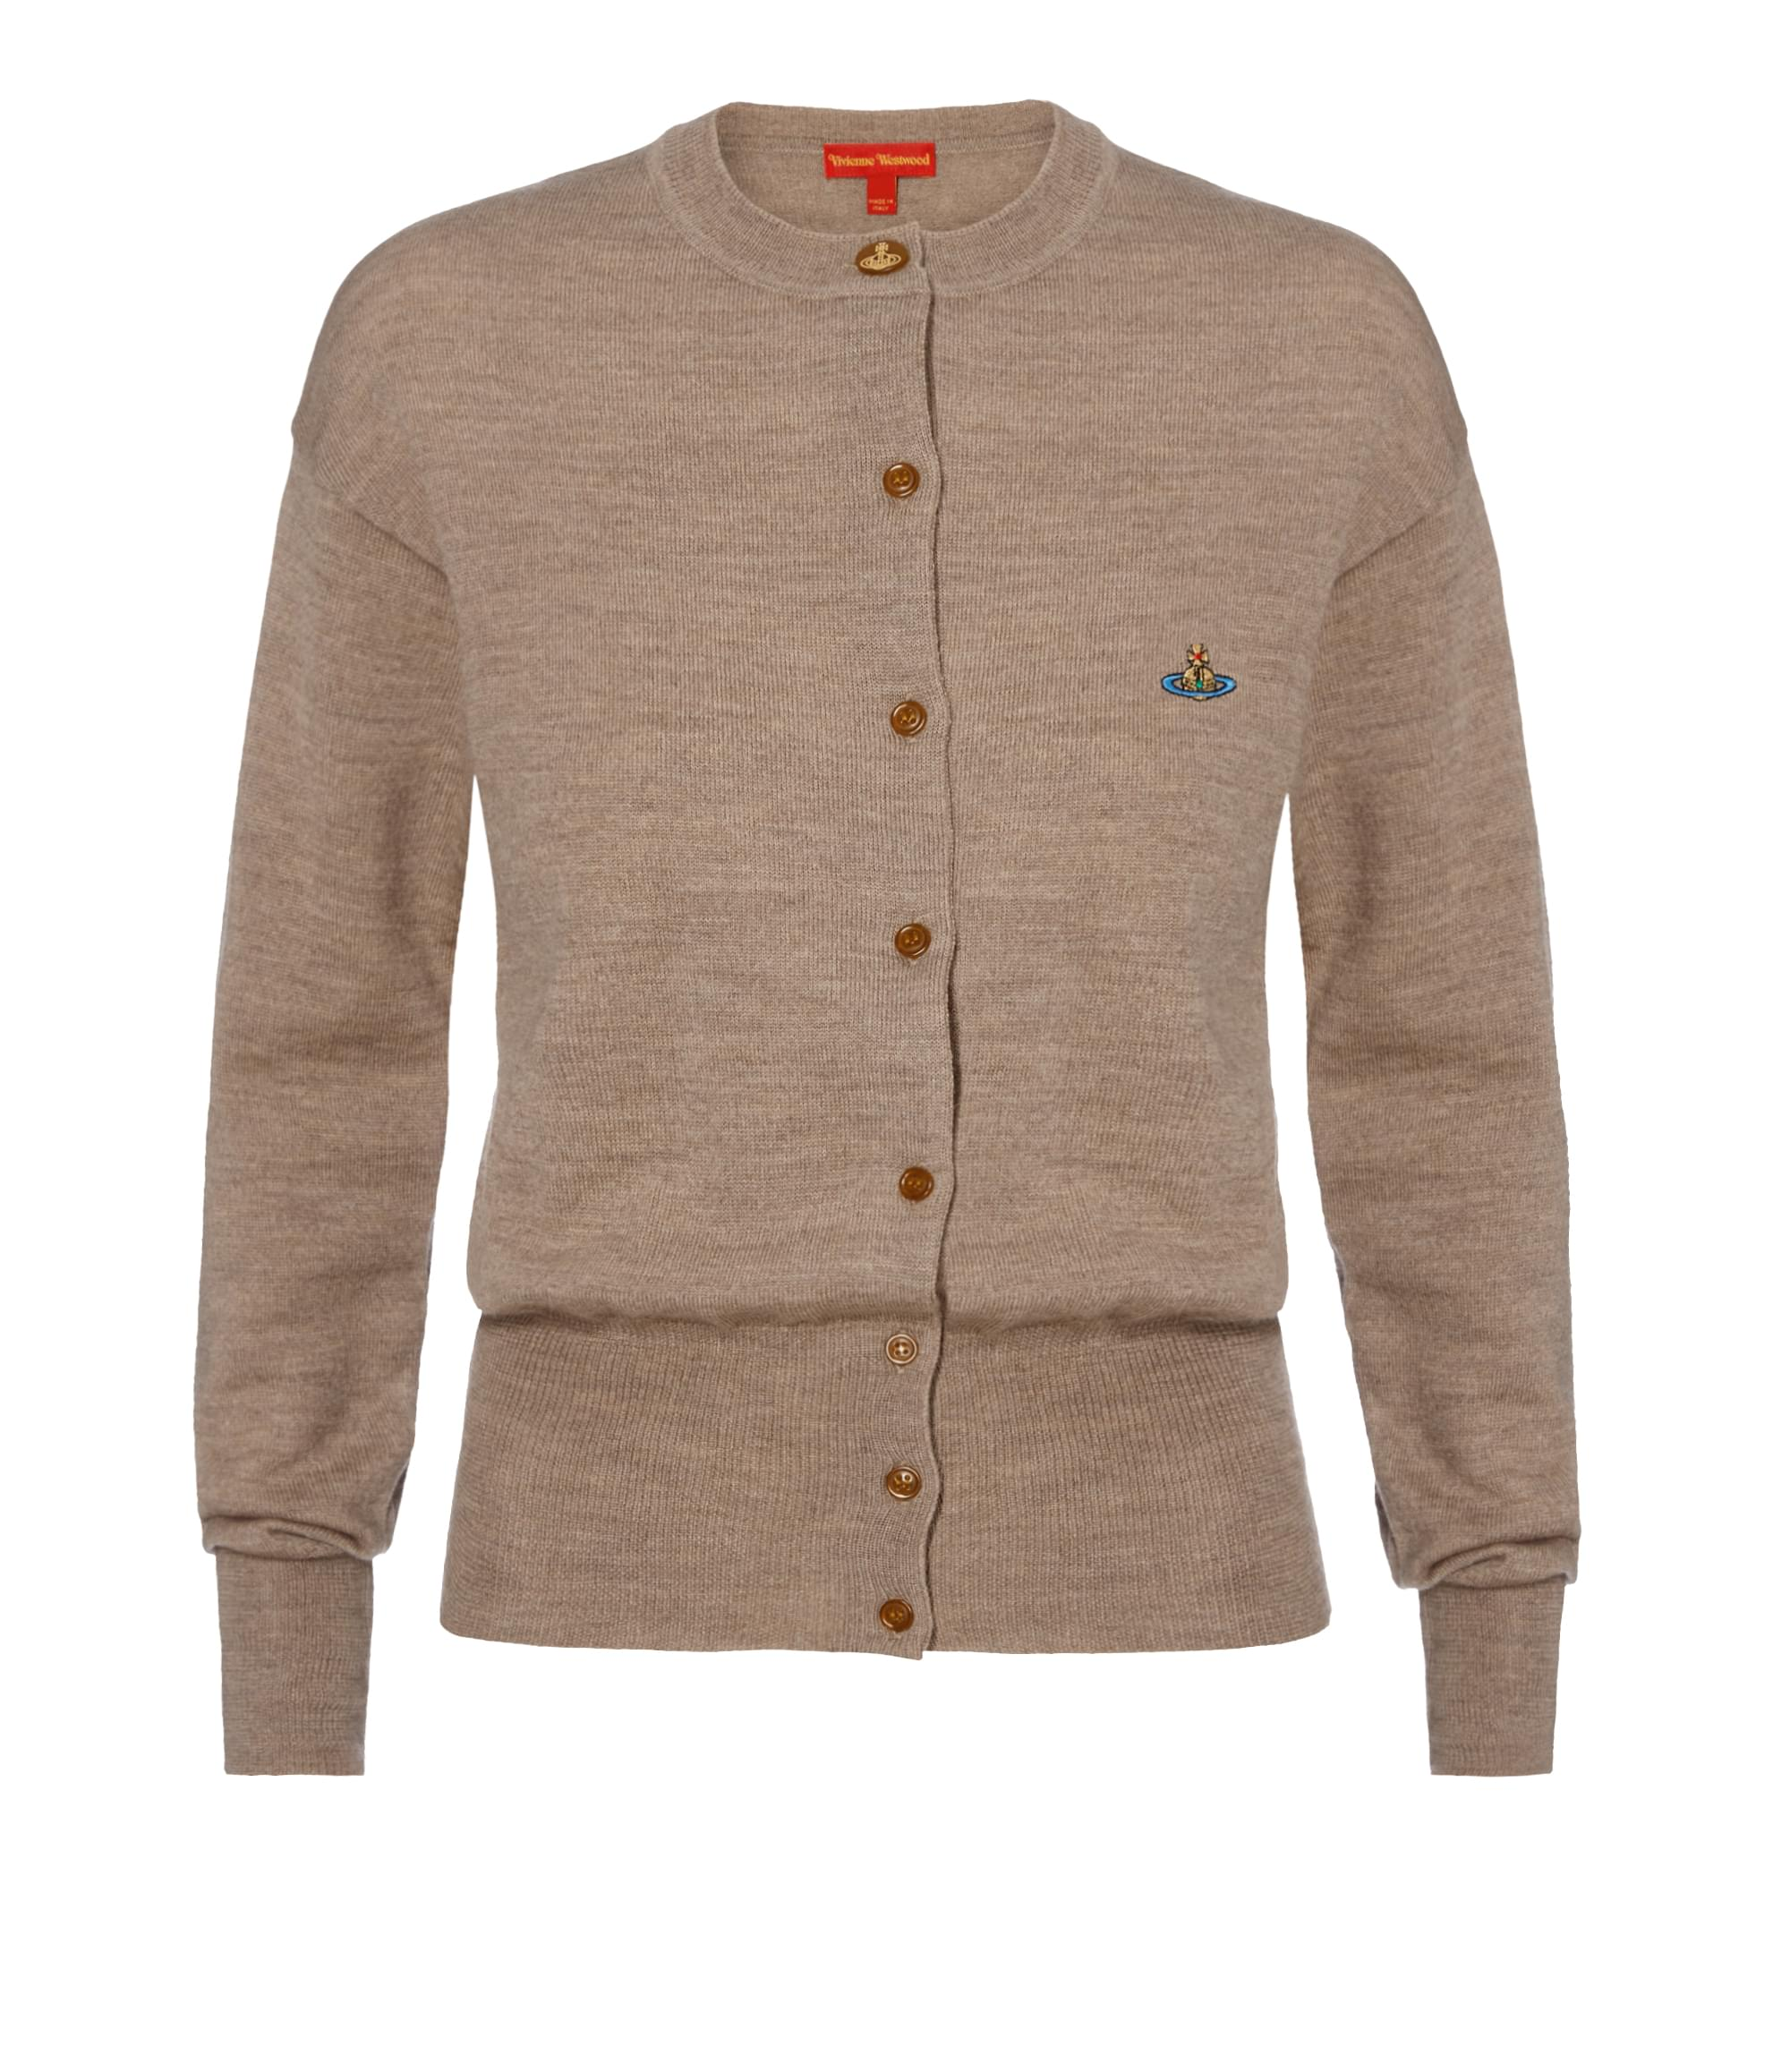 Vivienne Westwood Fawn Classic Cardigan